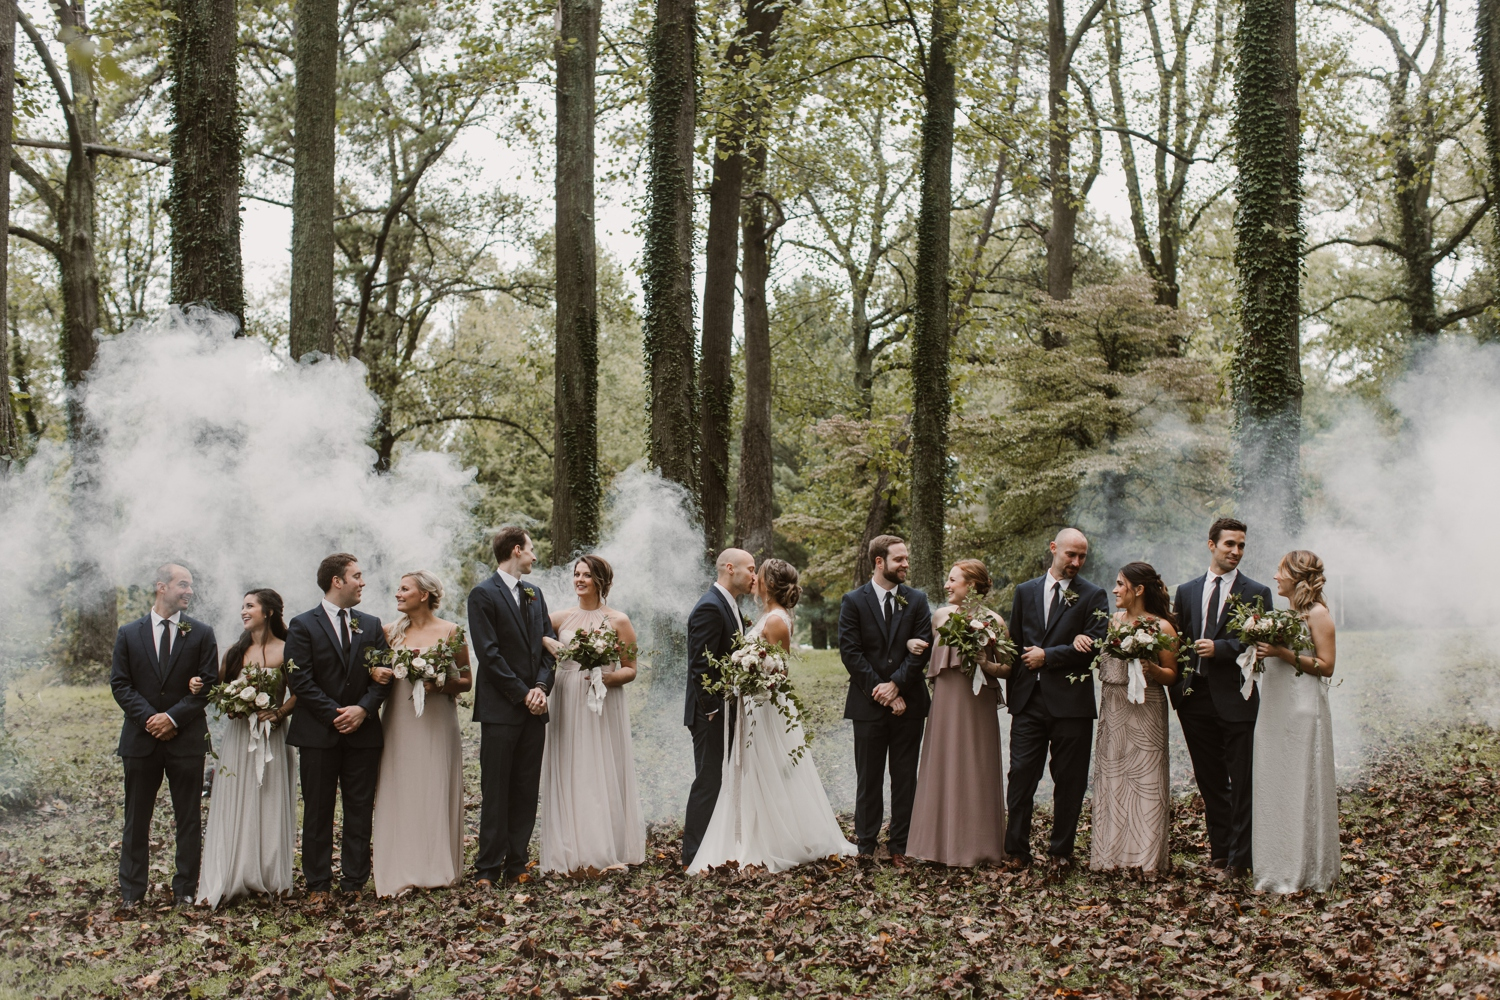 Baltimore wedding photographer outdoor Maryland wedding ceremony | forest earthy Annapolis wedding | bridal party smokebomb portraits